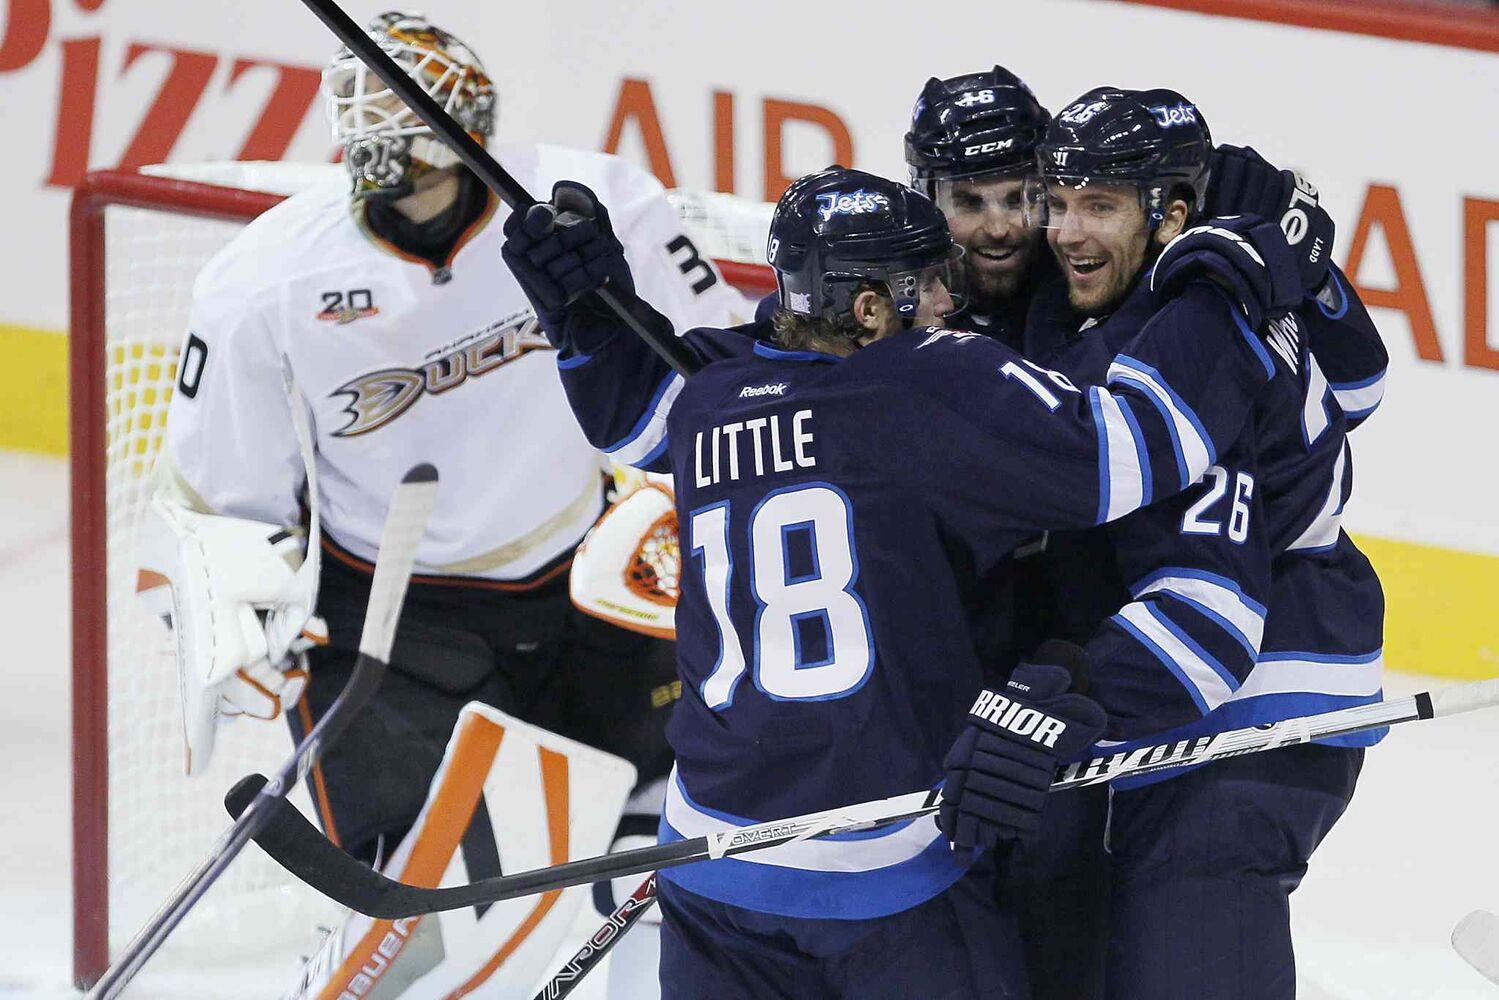 Winnipeg Jets' Bryan Little, Andrew Ladd and Blake Wheeler celebrate Ladd's goal against Anaheim Ducks' goaltender Viktor Fasth during the first period. (JOHN WOODS / WINNIPEG FREE PRESS)